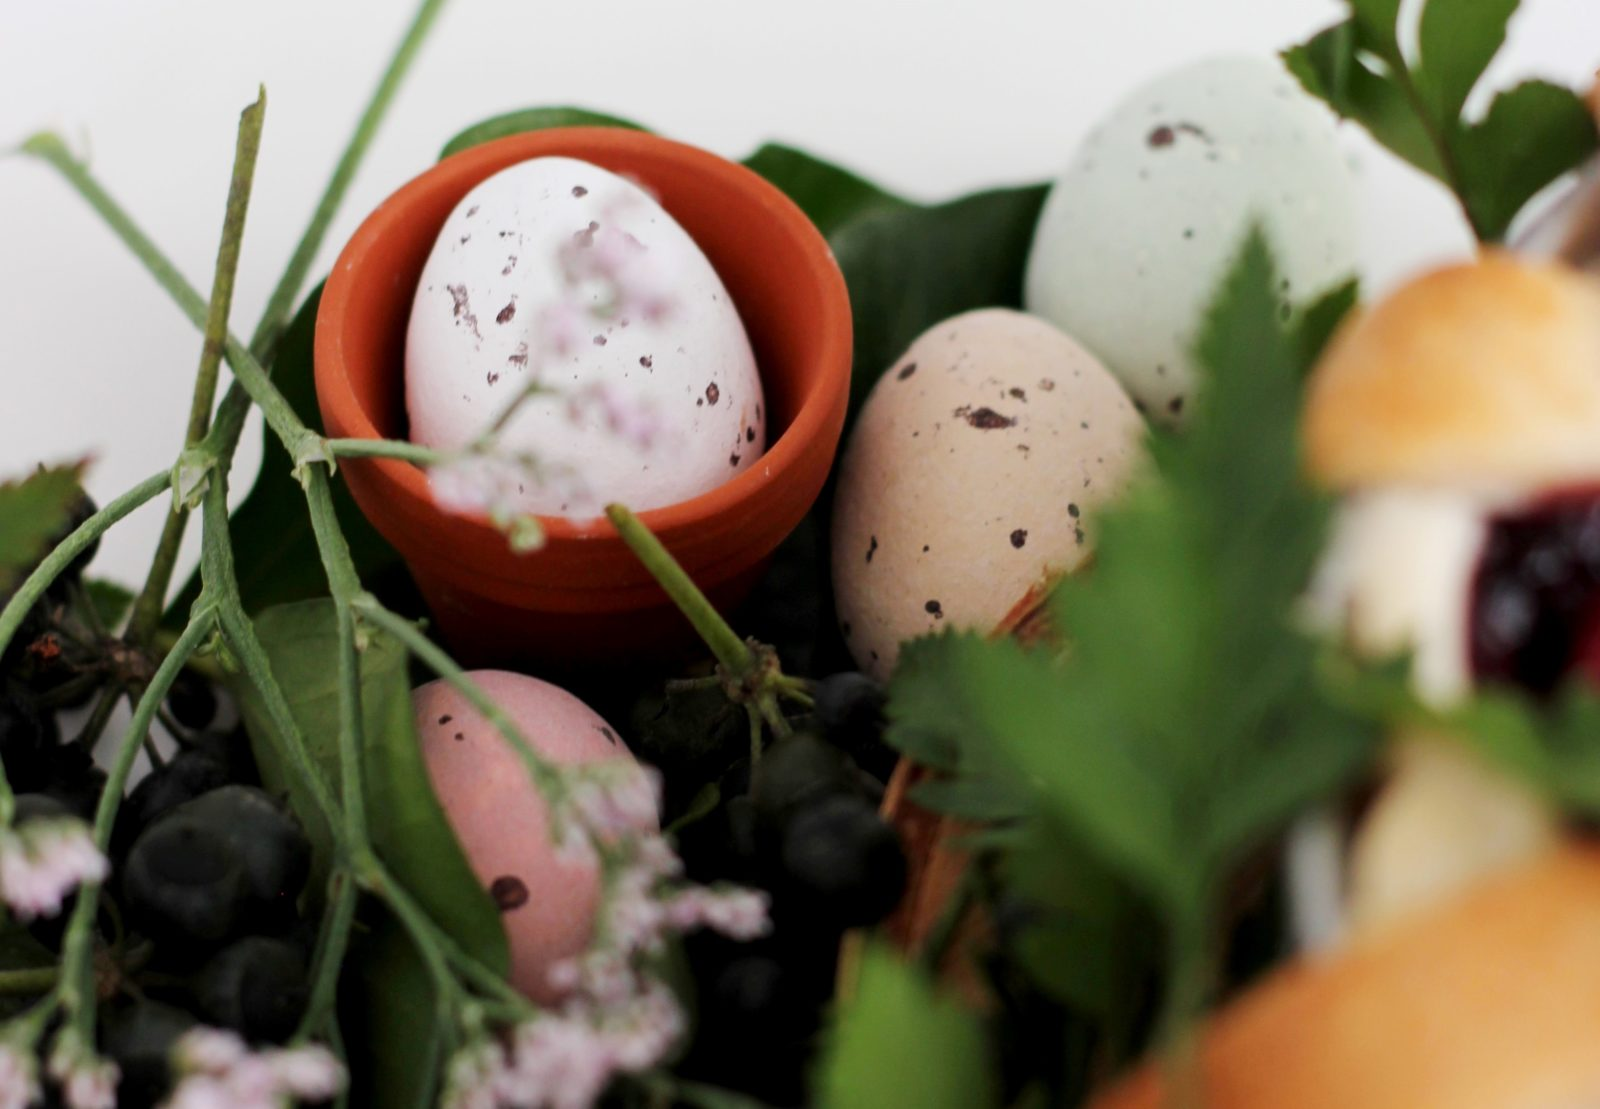 Variety of eggs surrounded by foliage